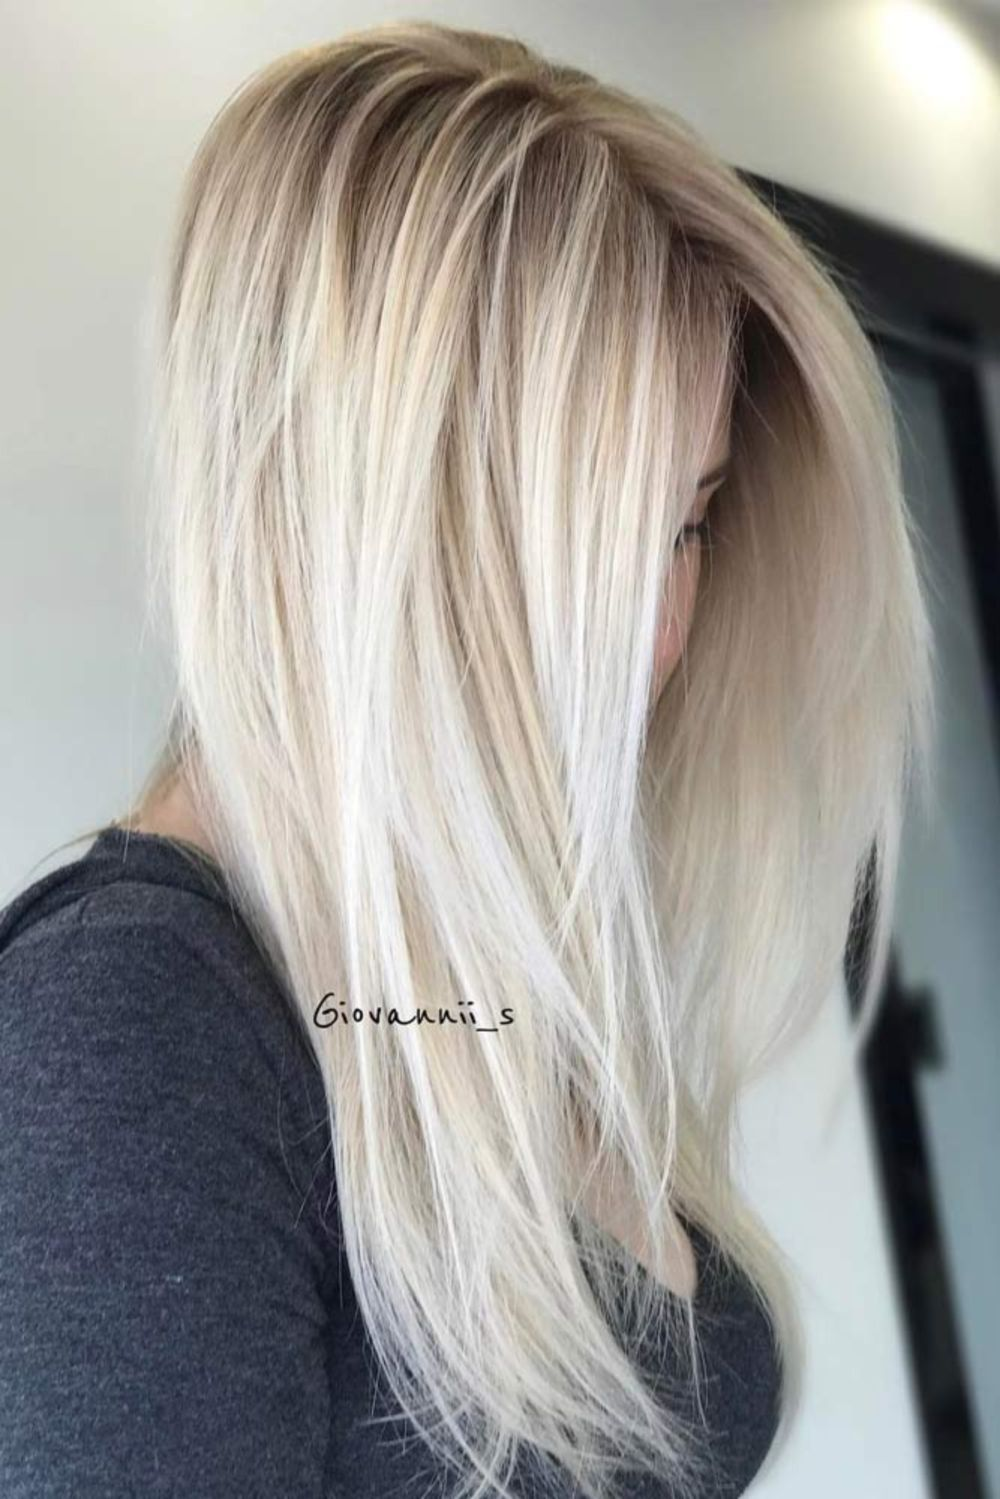 Pretty Blonde Hair Color Ideas 39 Fashionetter Hairstyles